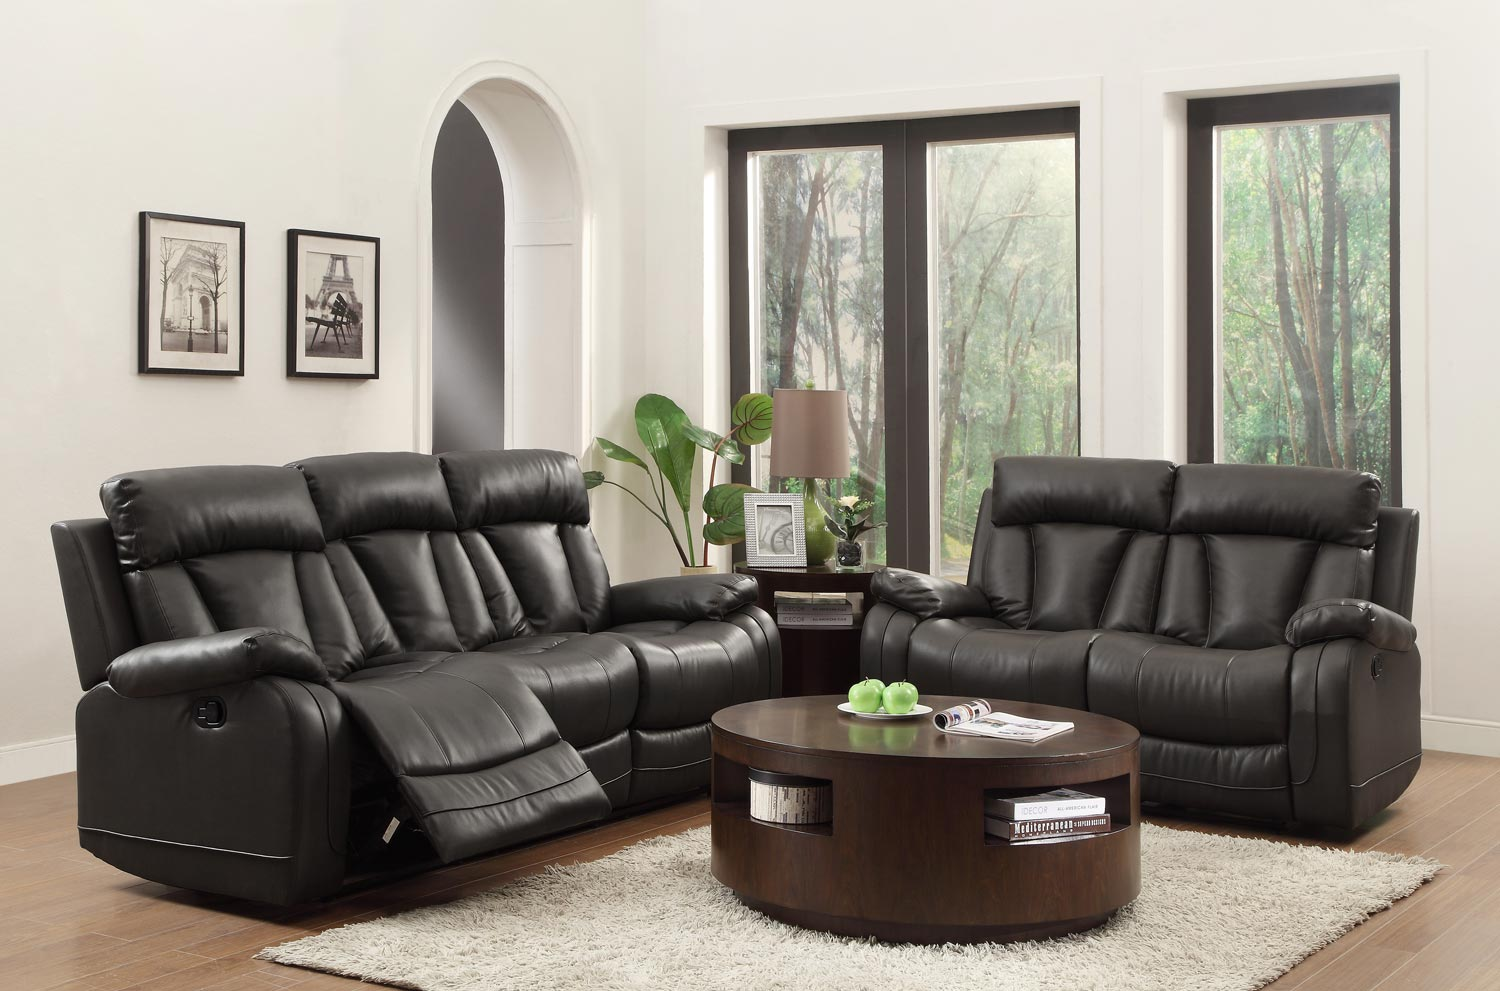 homelegance ackerman reclining sofa set black bonded leather match 8500blk sofa set at. Black Bedroom Furniture Sets. Home Design Ideas